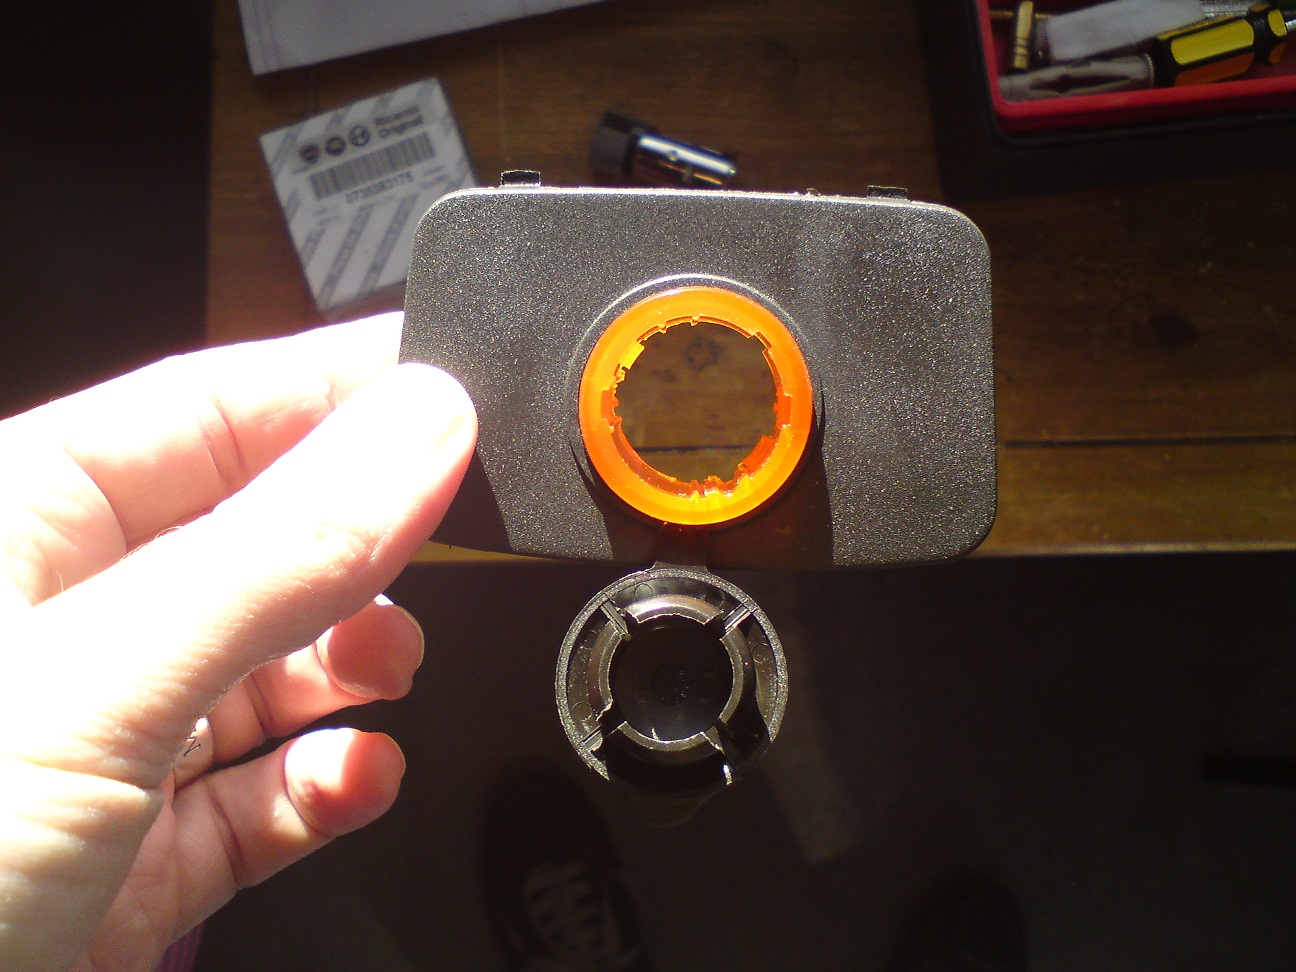 General Installing A 12v Power Socket In Fiat Panda The Forum 500 Fuse Box Cigarette Lighter Fit Through Orange Casing It Will Only Go One Way